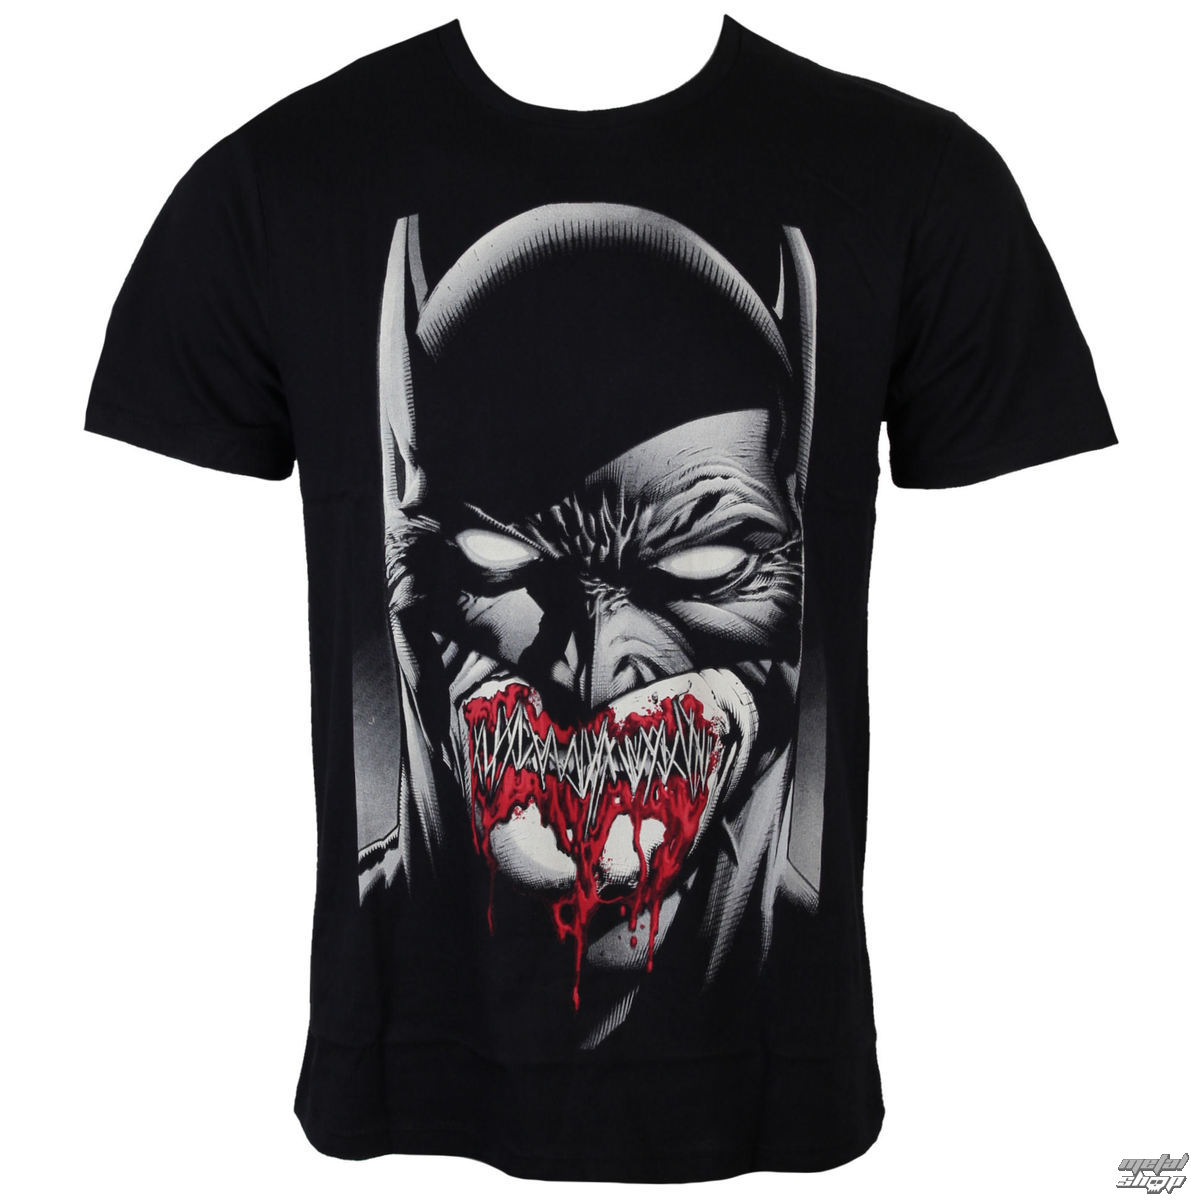 filmes póló férfi Batman - Dark Smile - LEGEND - MEBATMBTS037 ... 0d04b6b42b